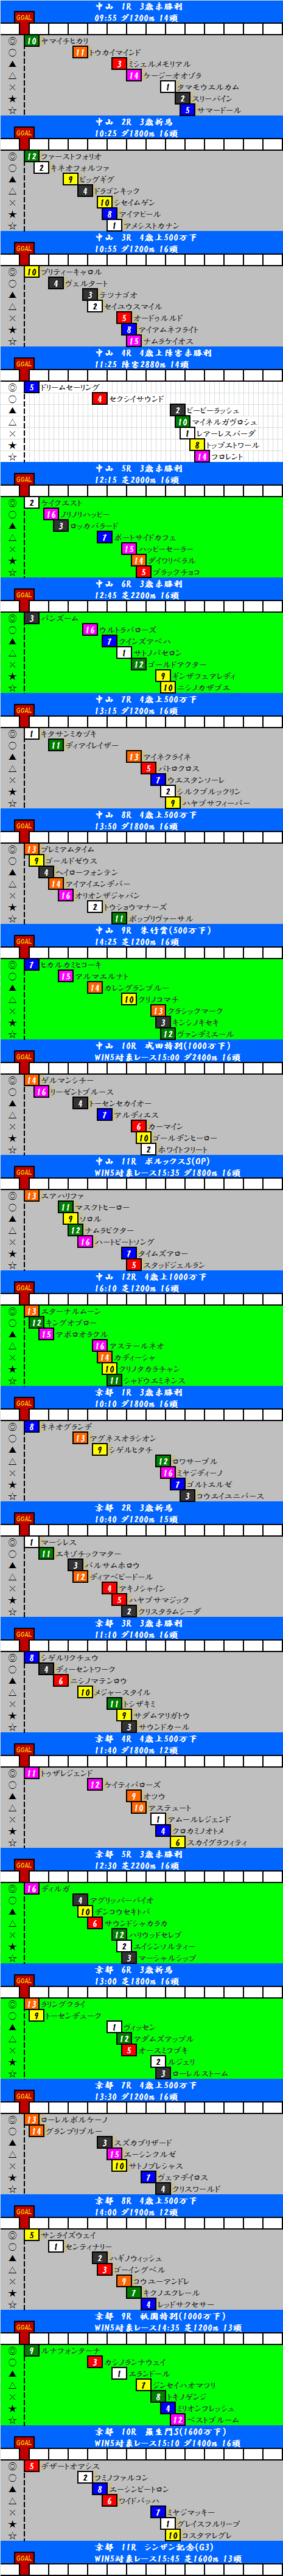 201401121.png